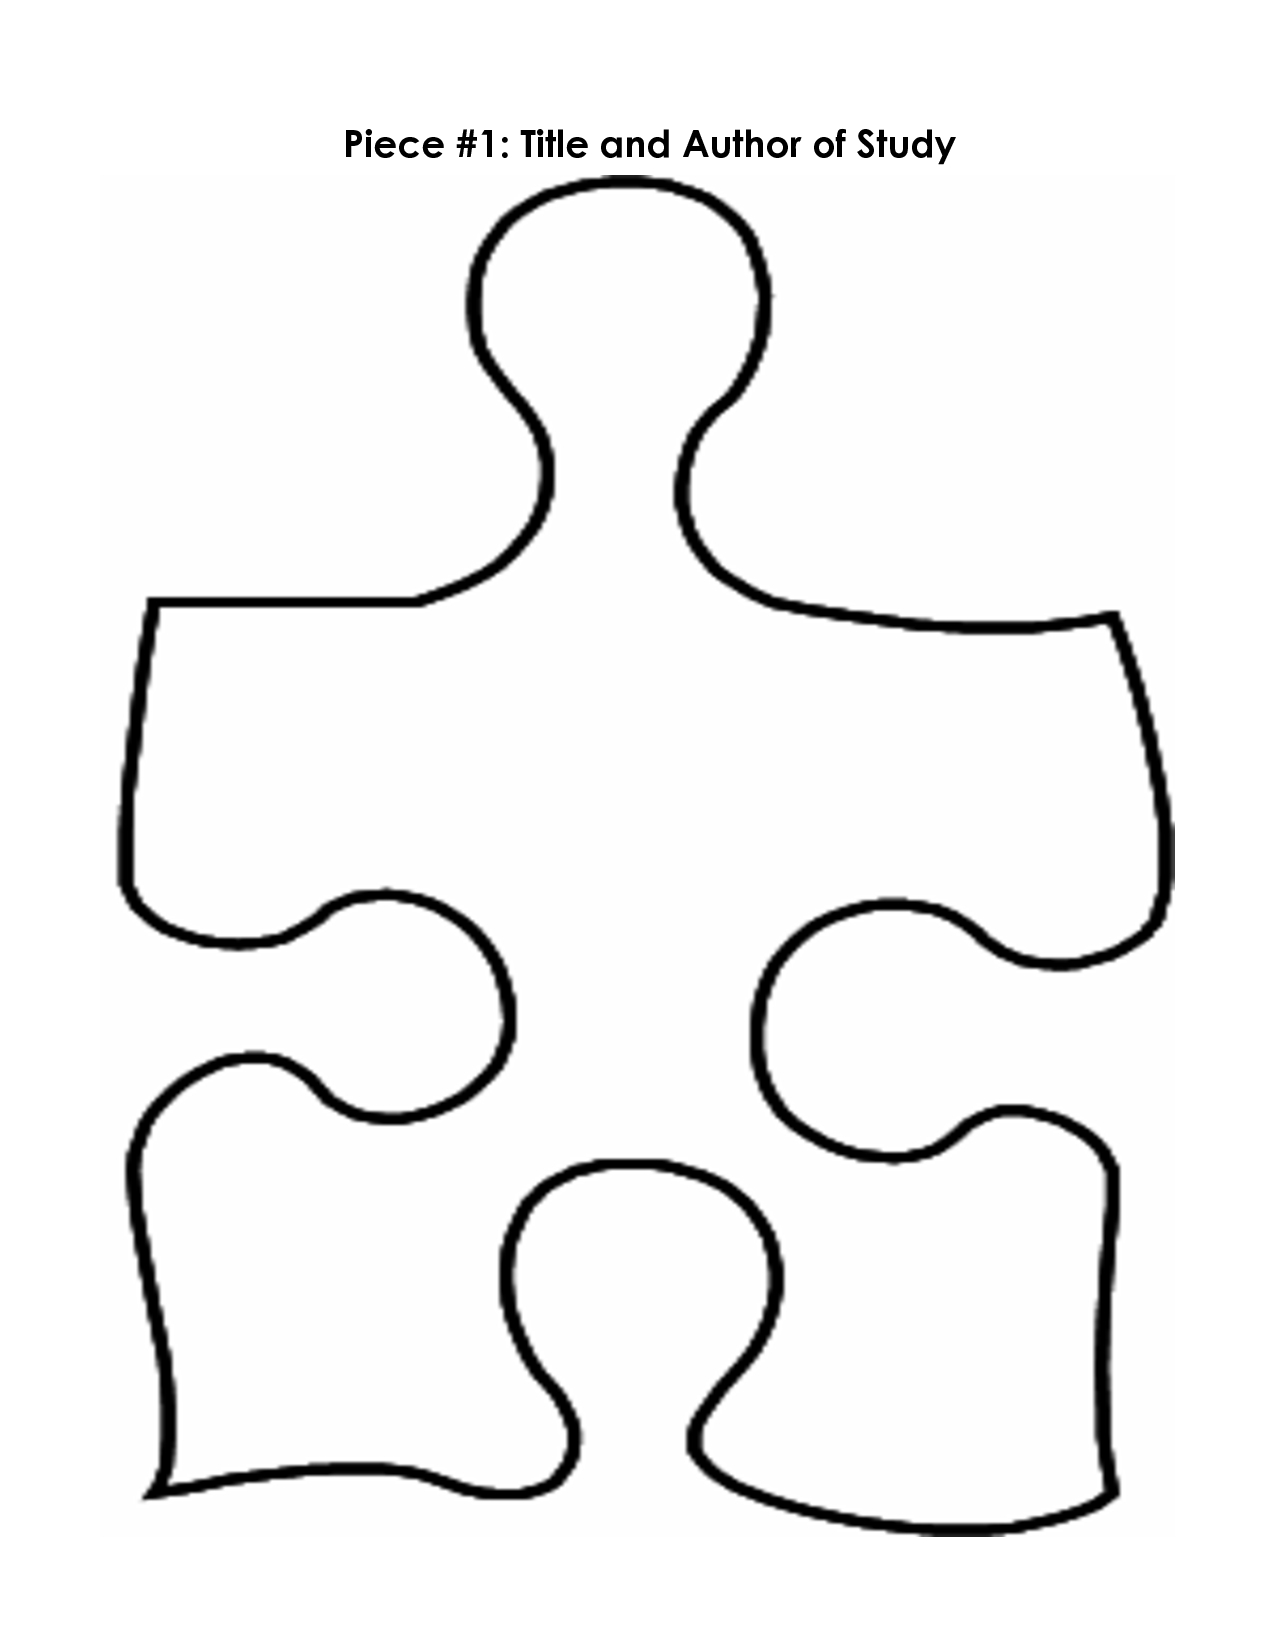 Free Puzzle Pieces Template, Download Free Clip Art, Free Clip Art - Printable Images Of Puzzle Pieces